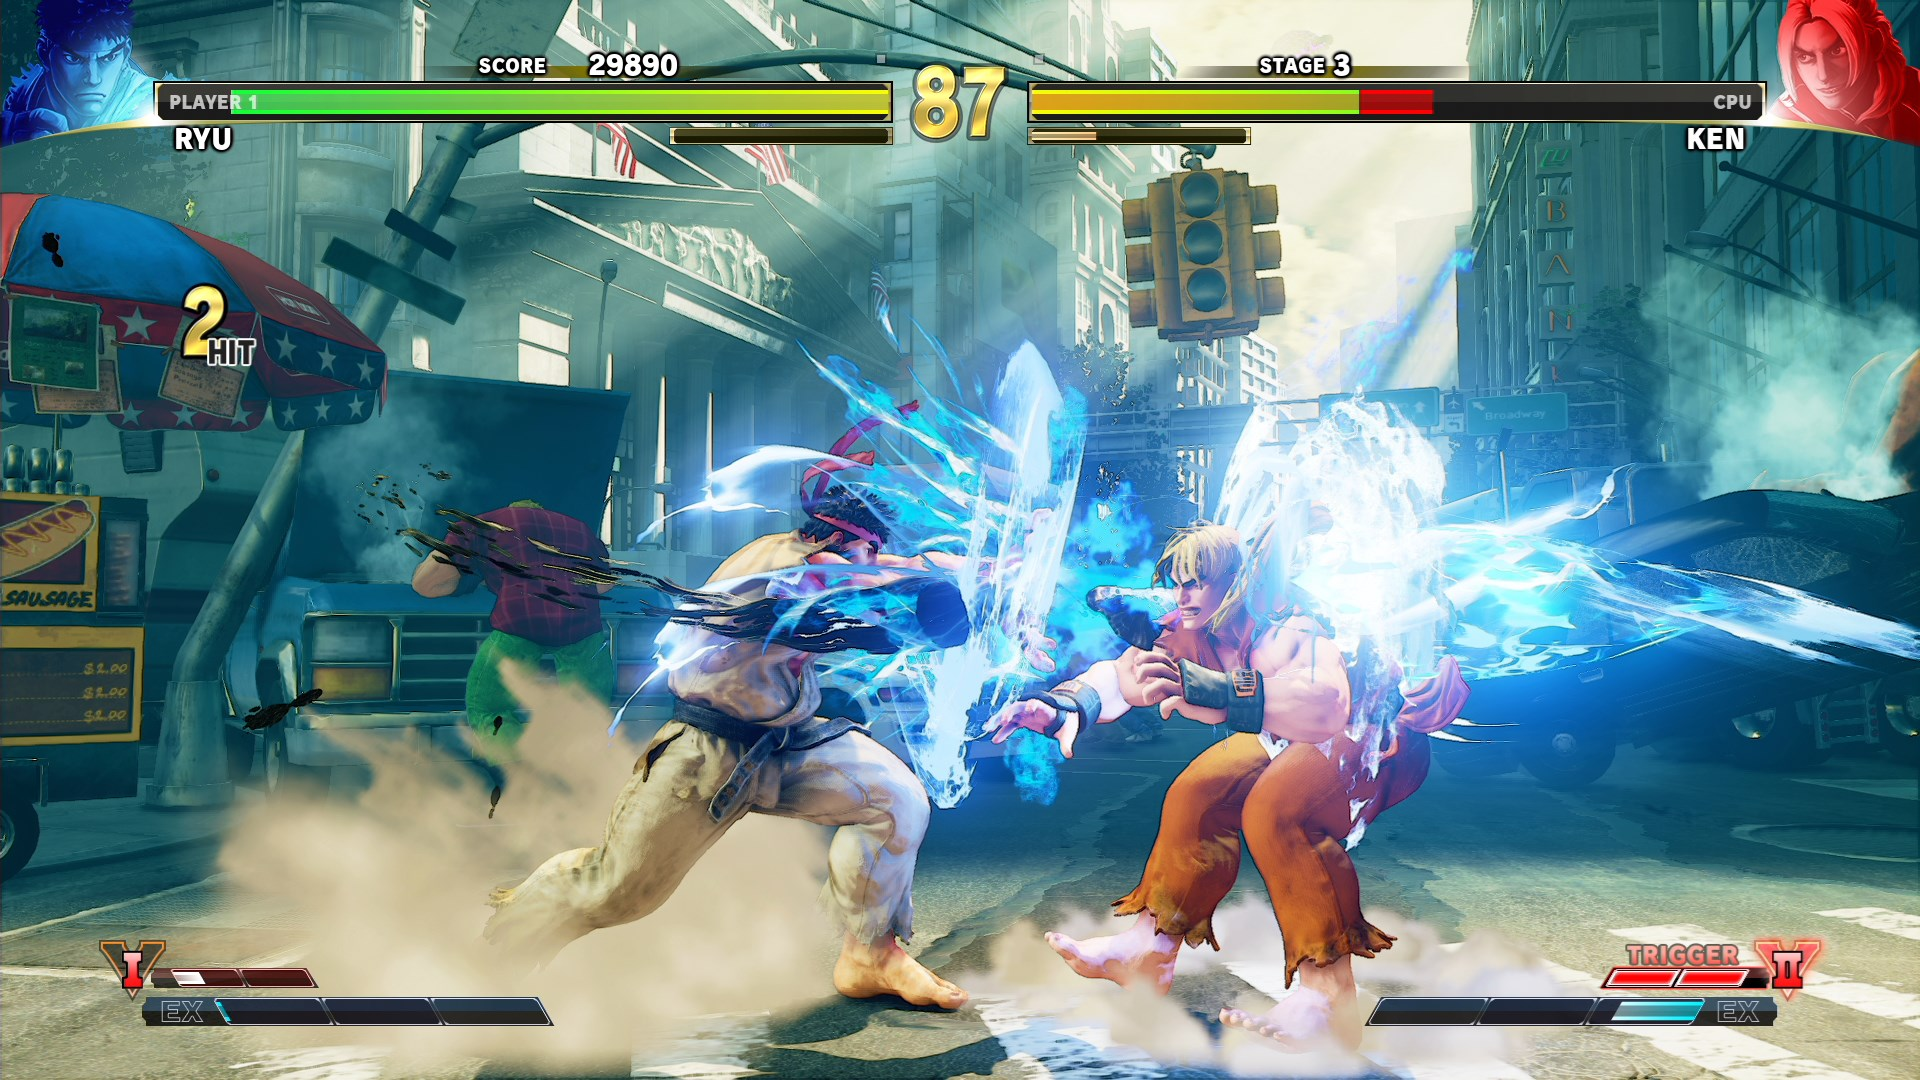 Street Fighter 5 is free-to-play for two weeks from Tuesday